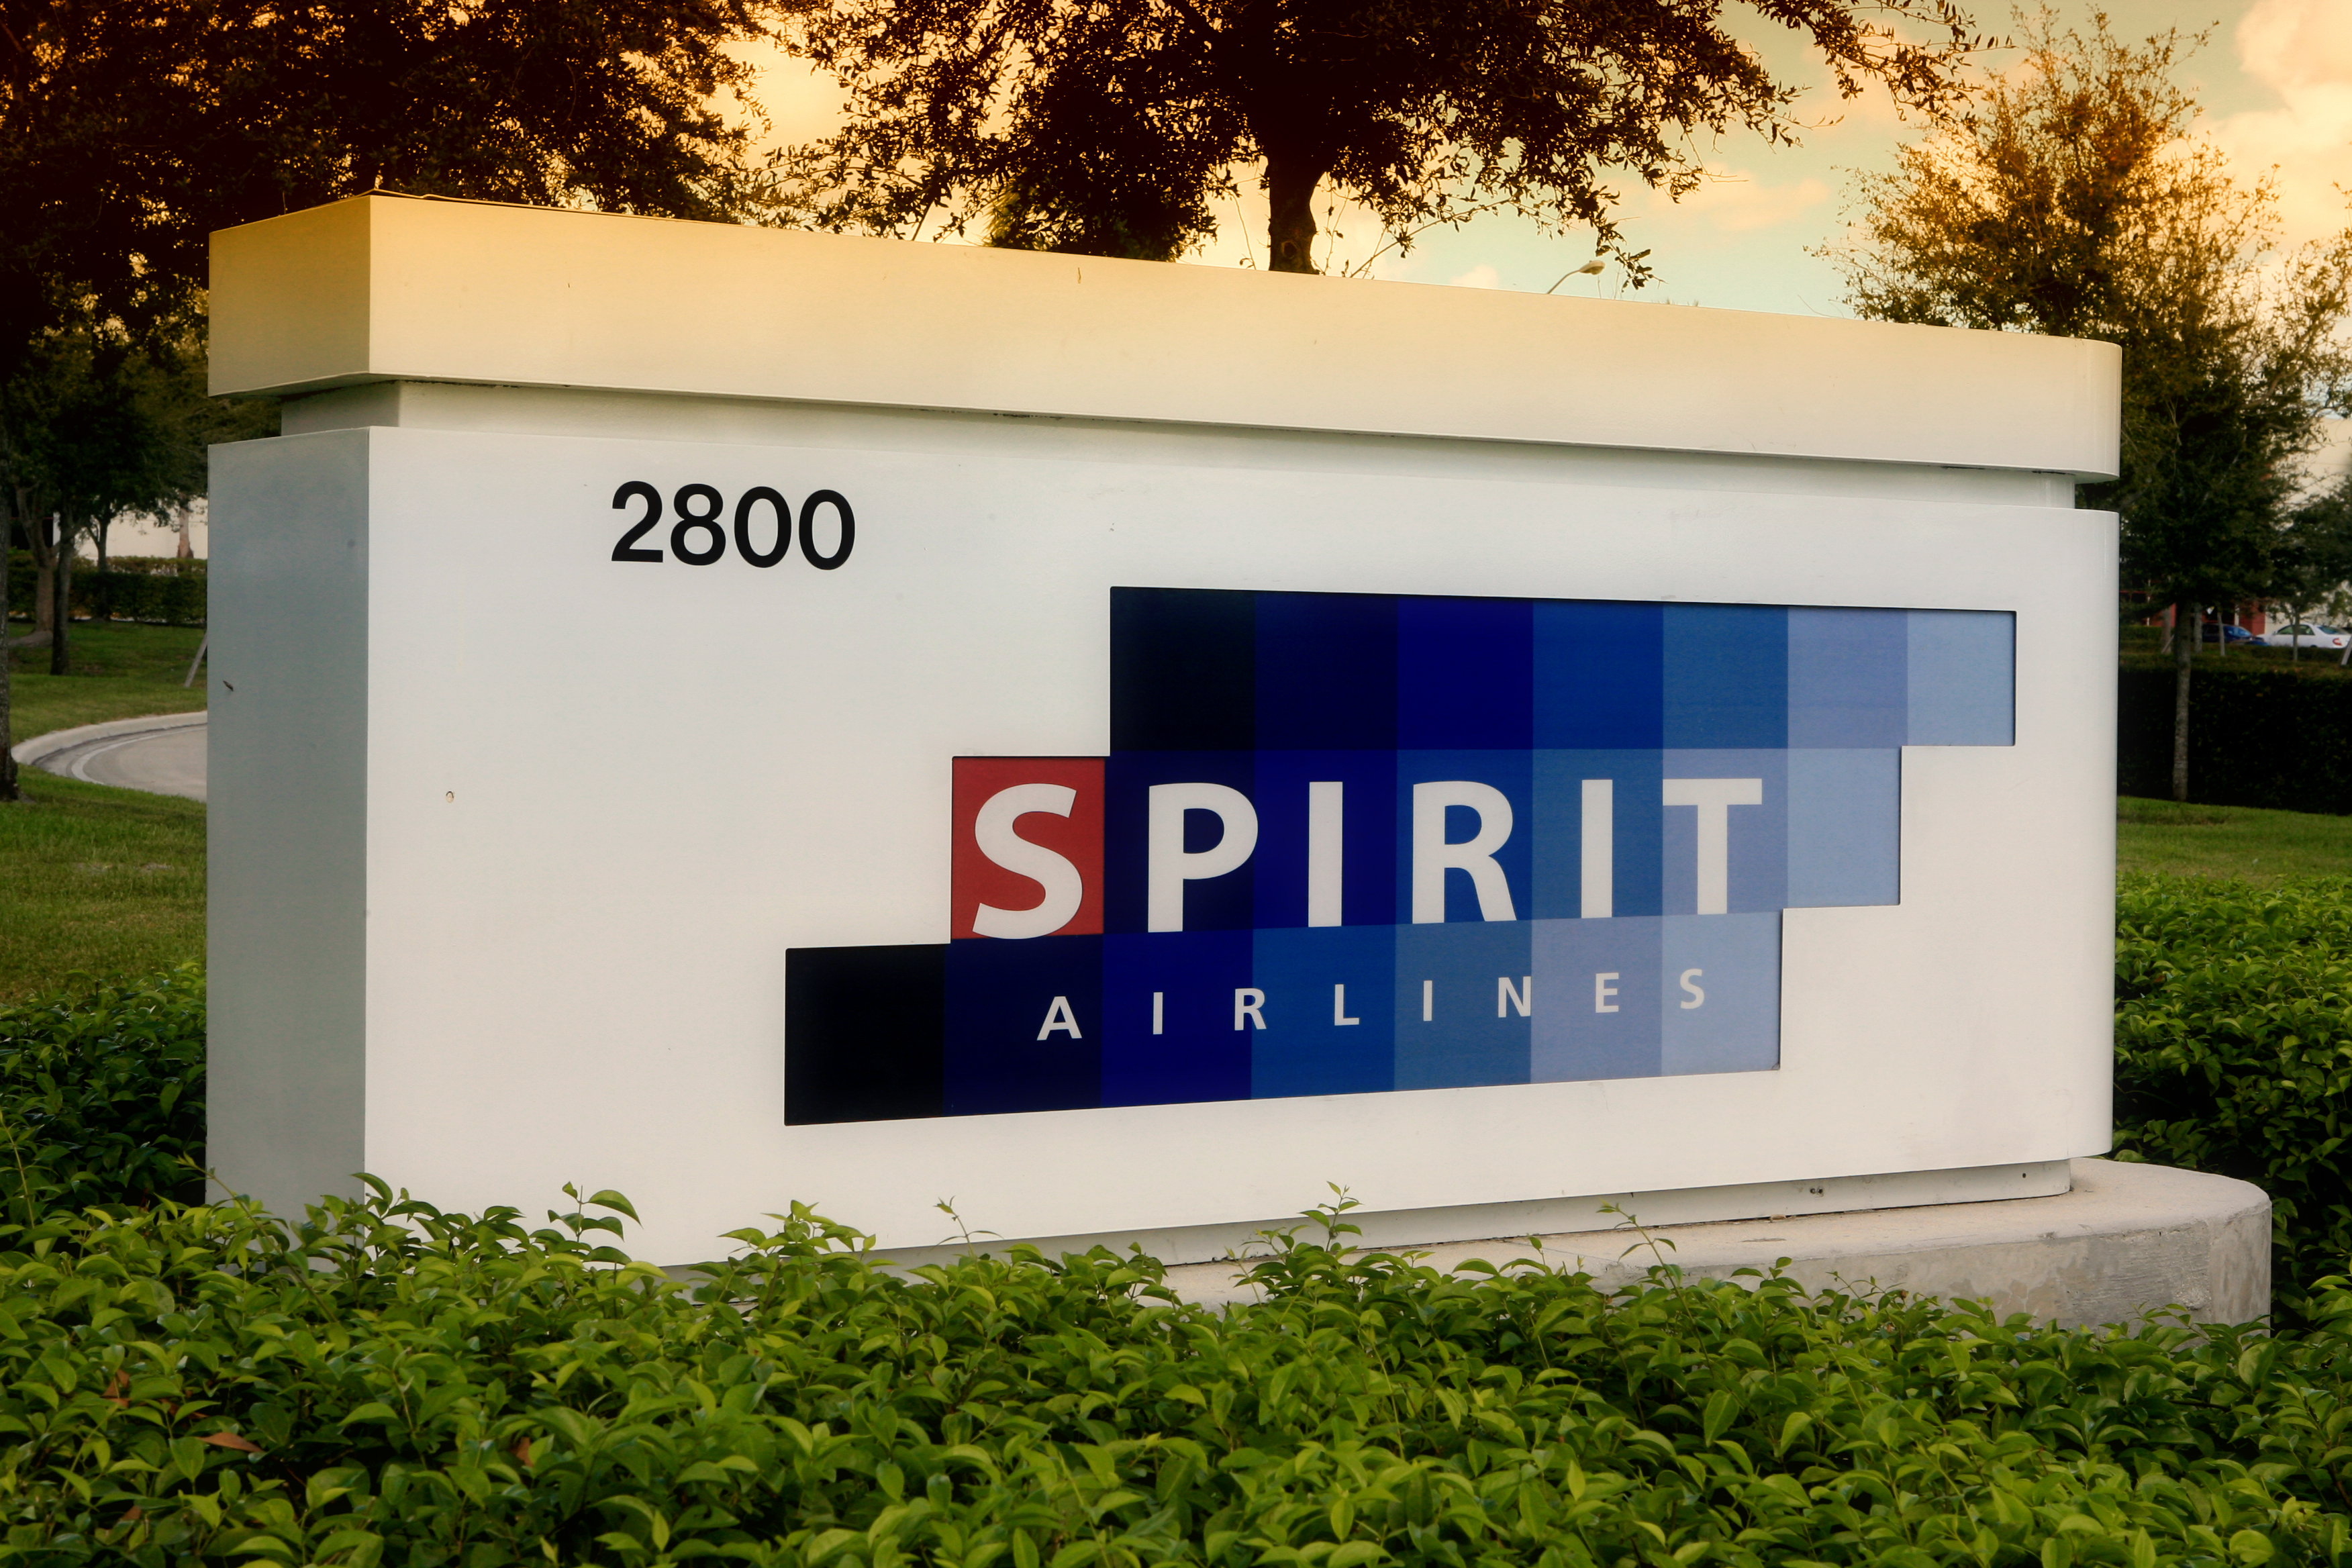 Business sign for Spirit Airlines, including the street address